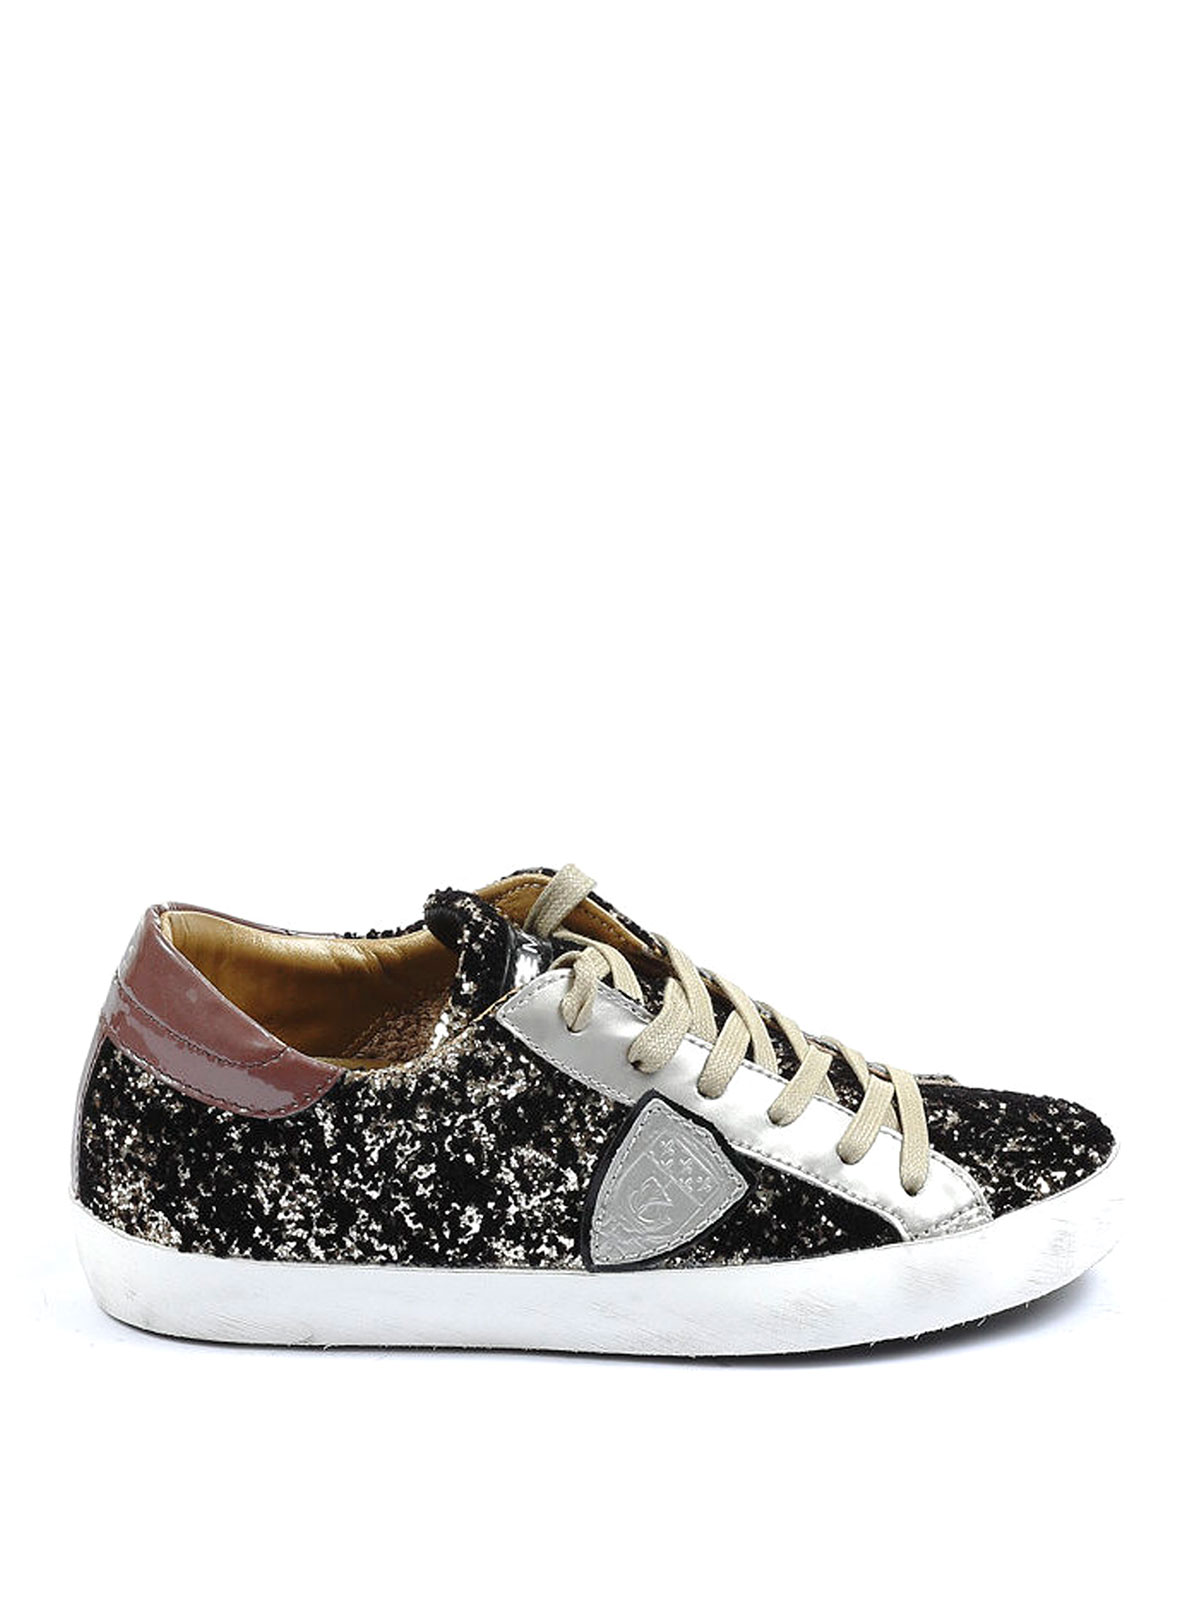 classic glitter leather sneakers by philippe model trainers ikrix. Black Bedroom Furniture Sets. Home Design Ideas